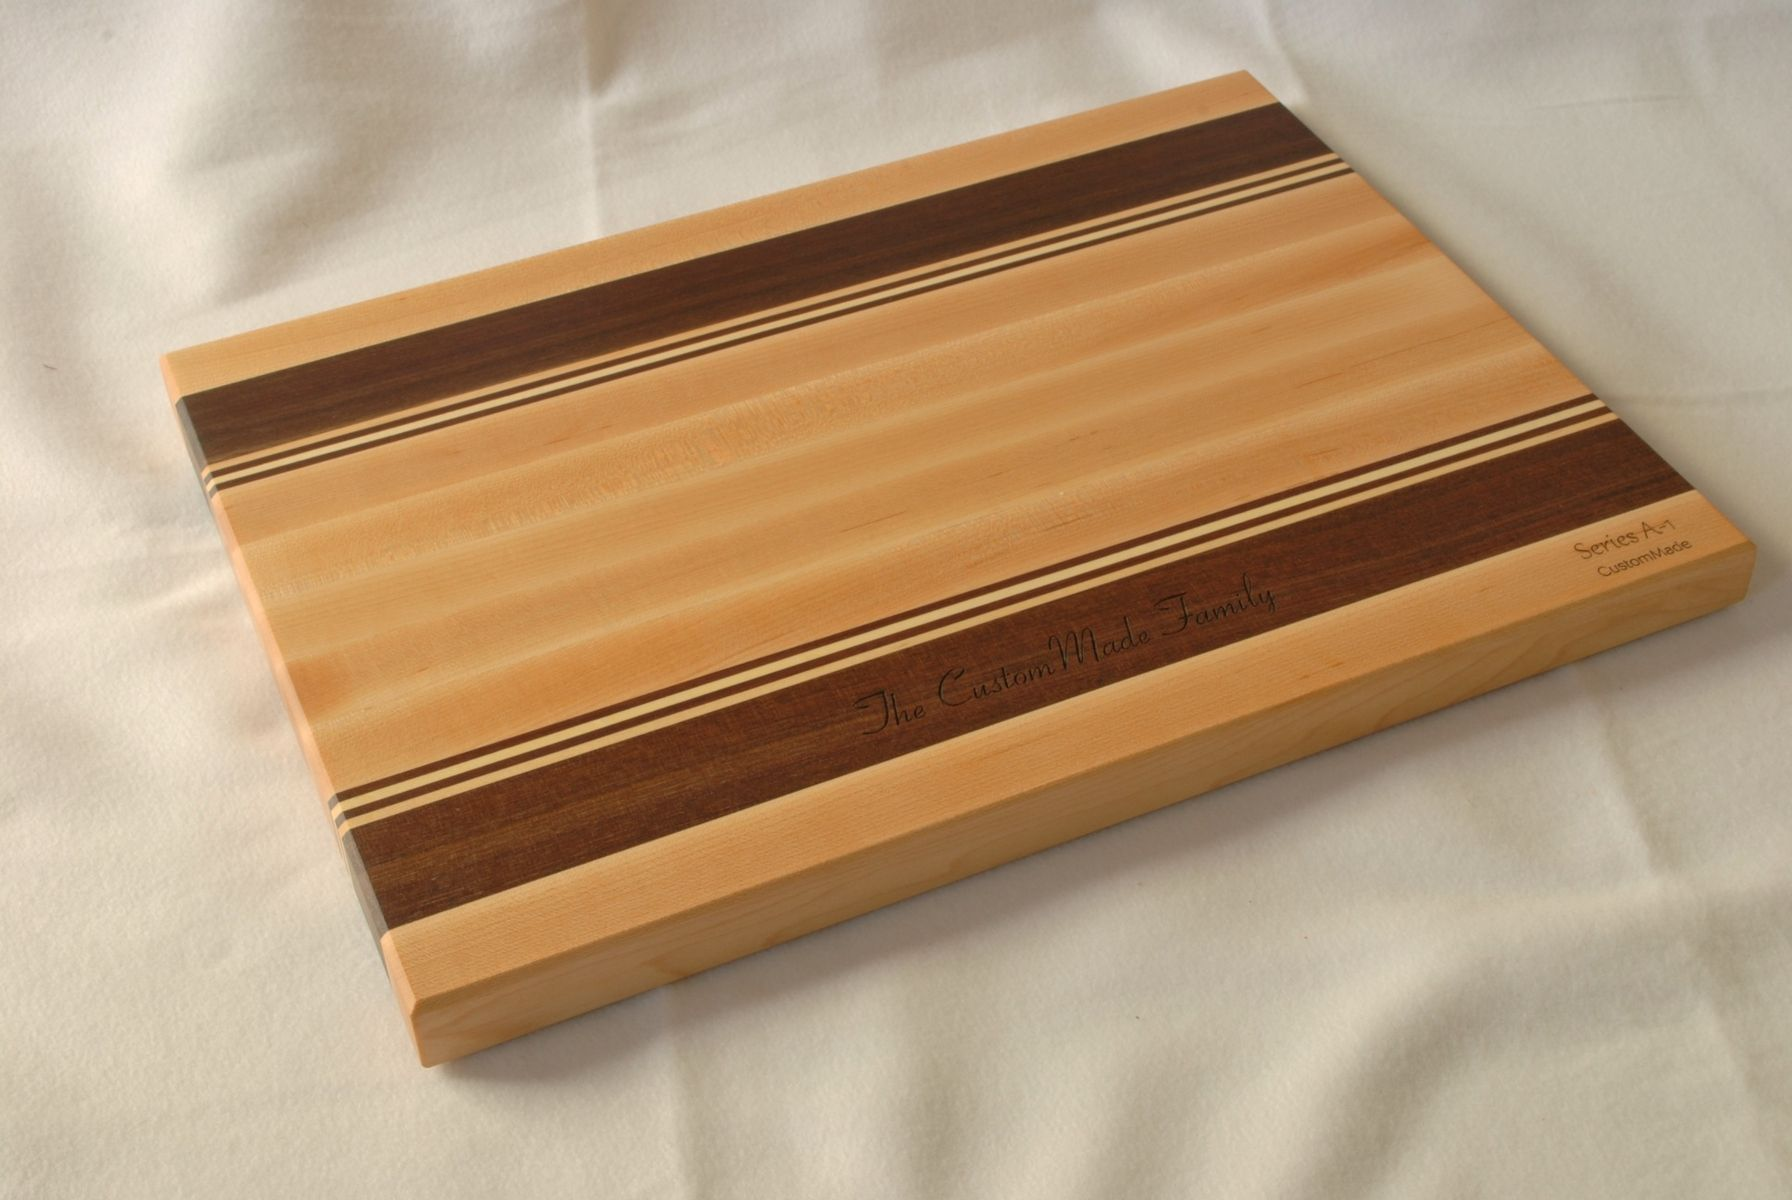 excellent design cool cutting boards. Buy a Handmade Personalized Wood Cutting Board With Engraving  made to order from Clark Creations CustomMade com